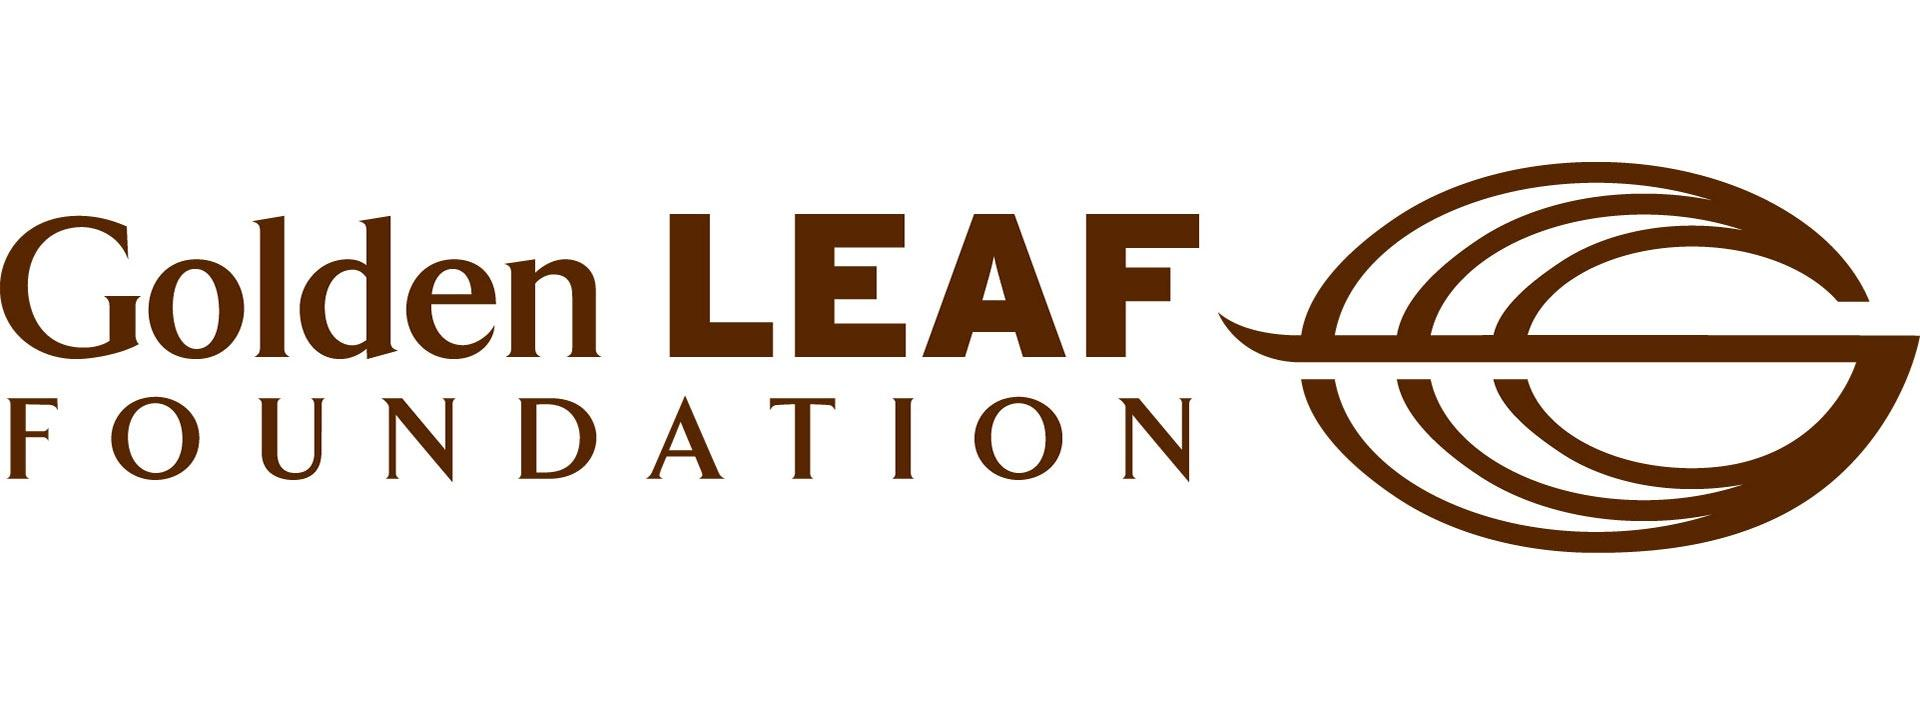 Golden LEAF Foundation,